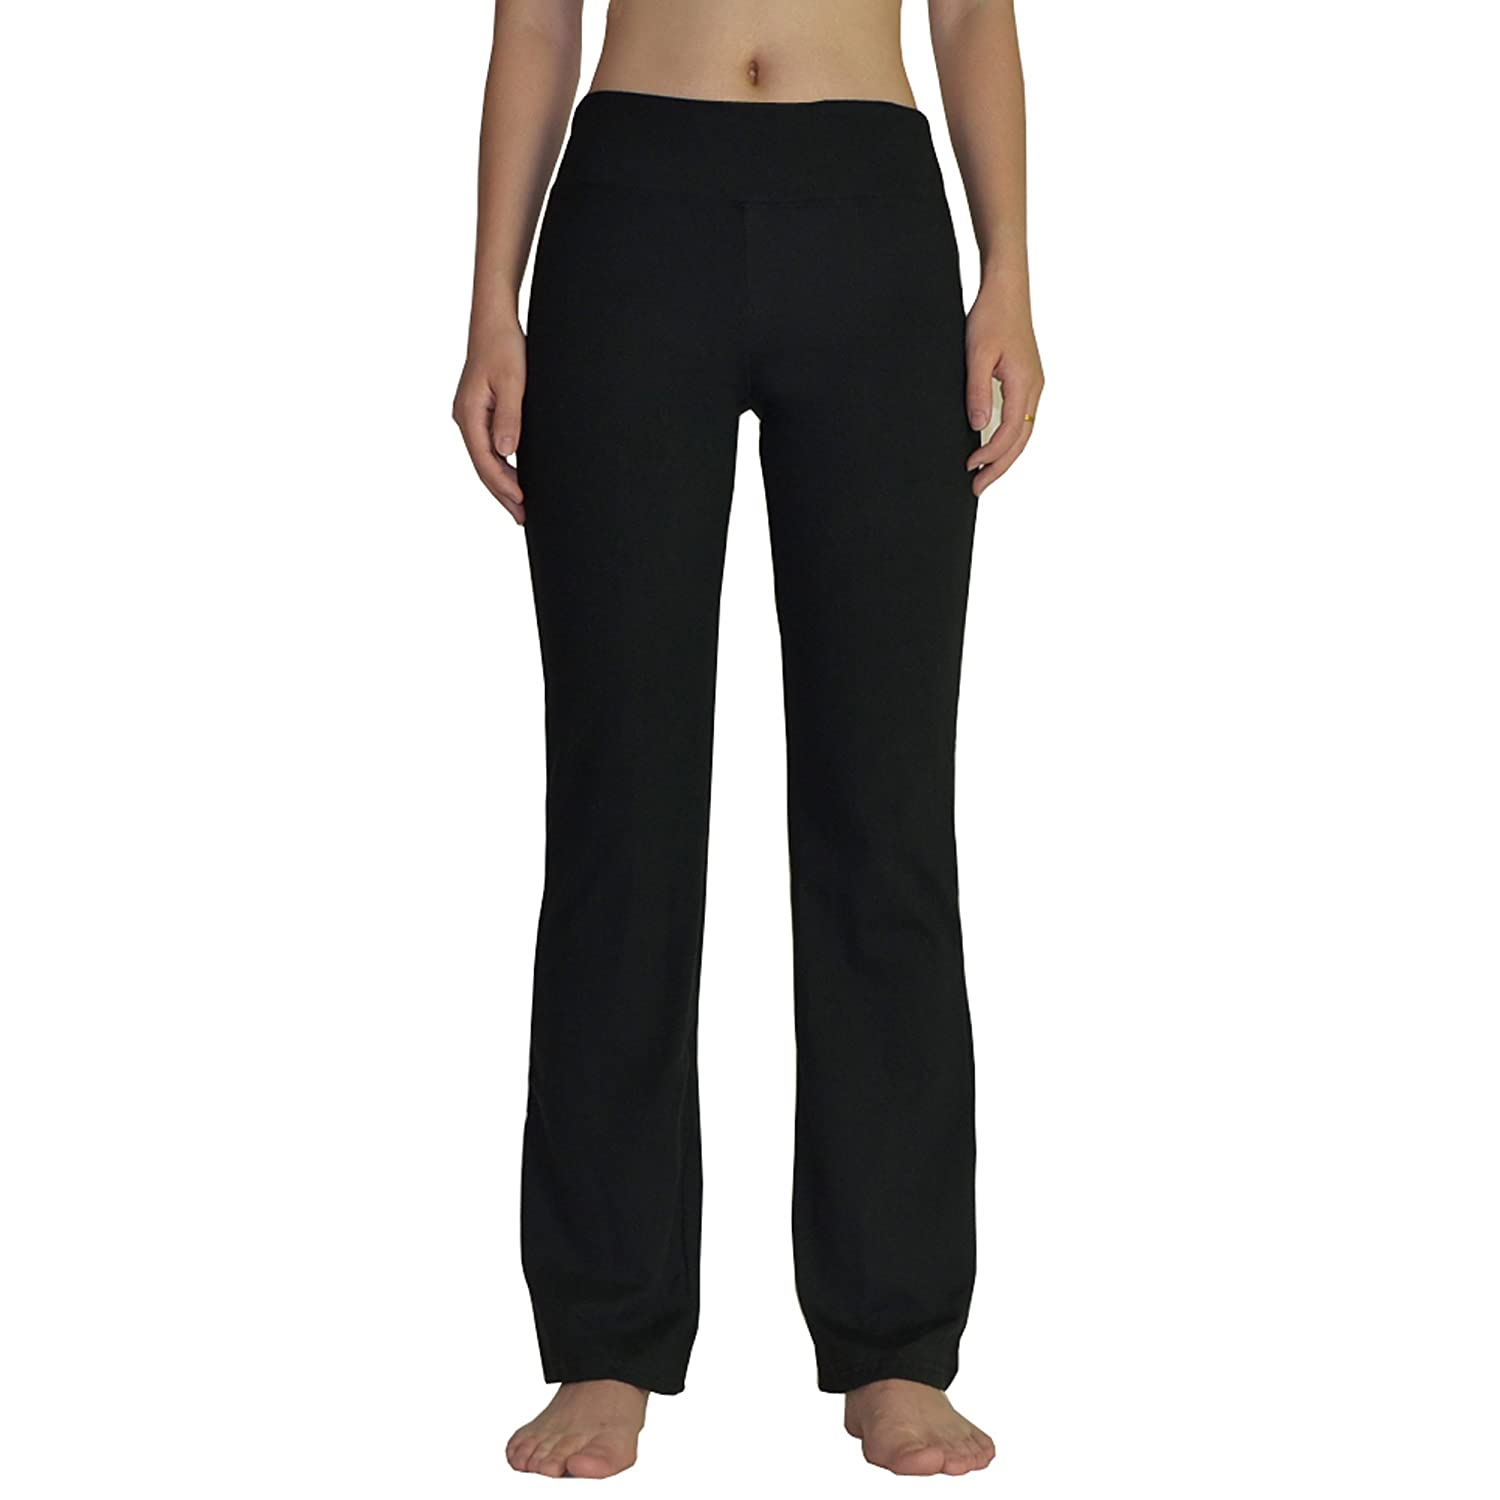 f262c6cf6462e Bootleg yoga pants create a leg-lengthening silhouette that looks great in  any gym mirror. Ideal for yoga, running errands and with right top/shoes  can ...